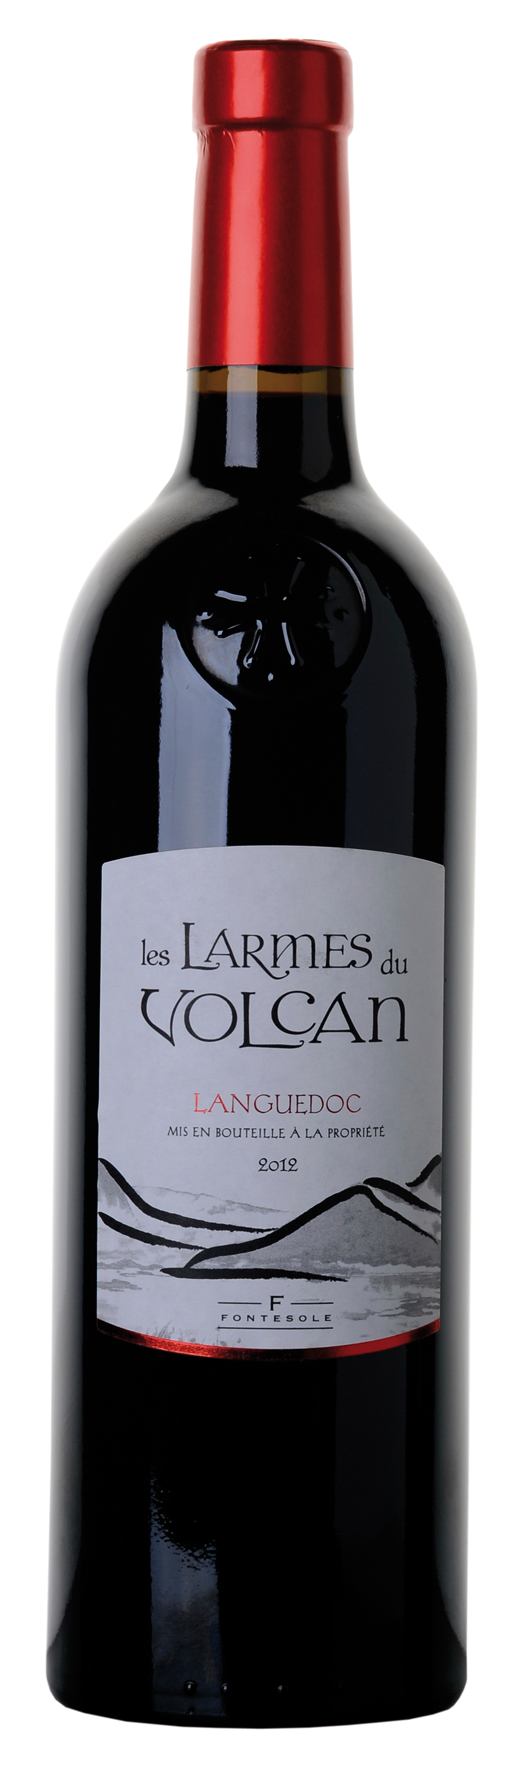 LARME_VOLCAN_ROUGE